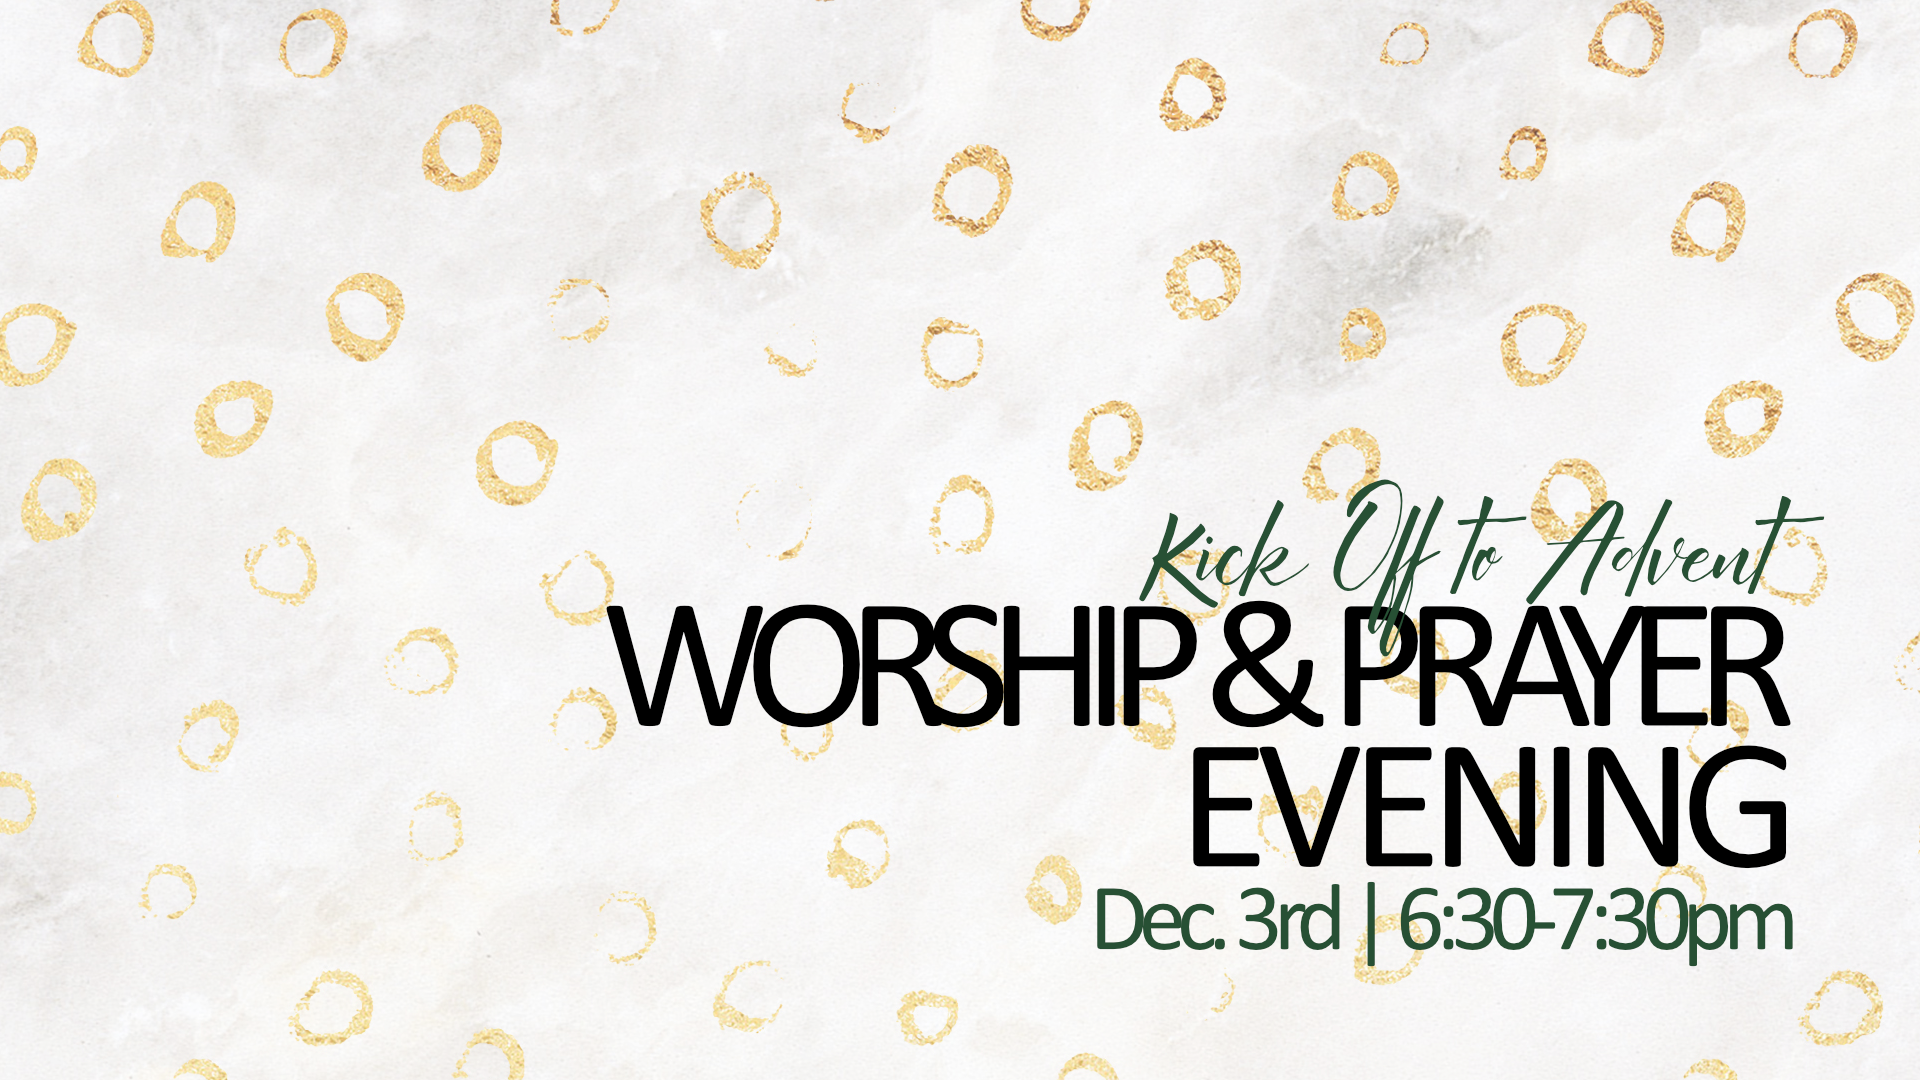 Kick Off to Advent Worship & Prayer Night Power Point.png